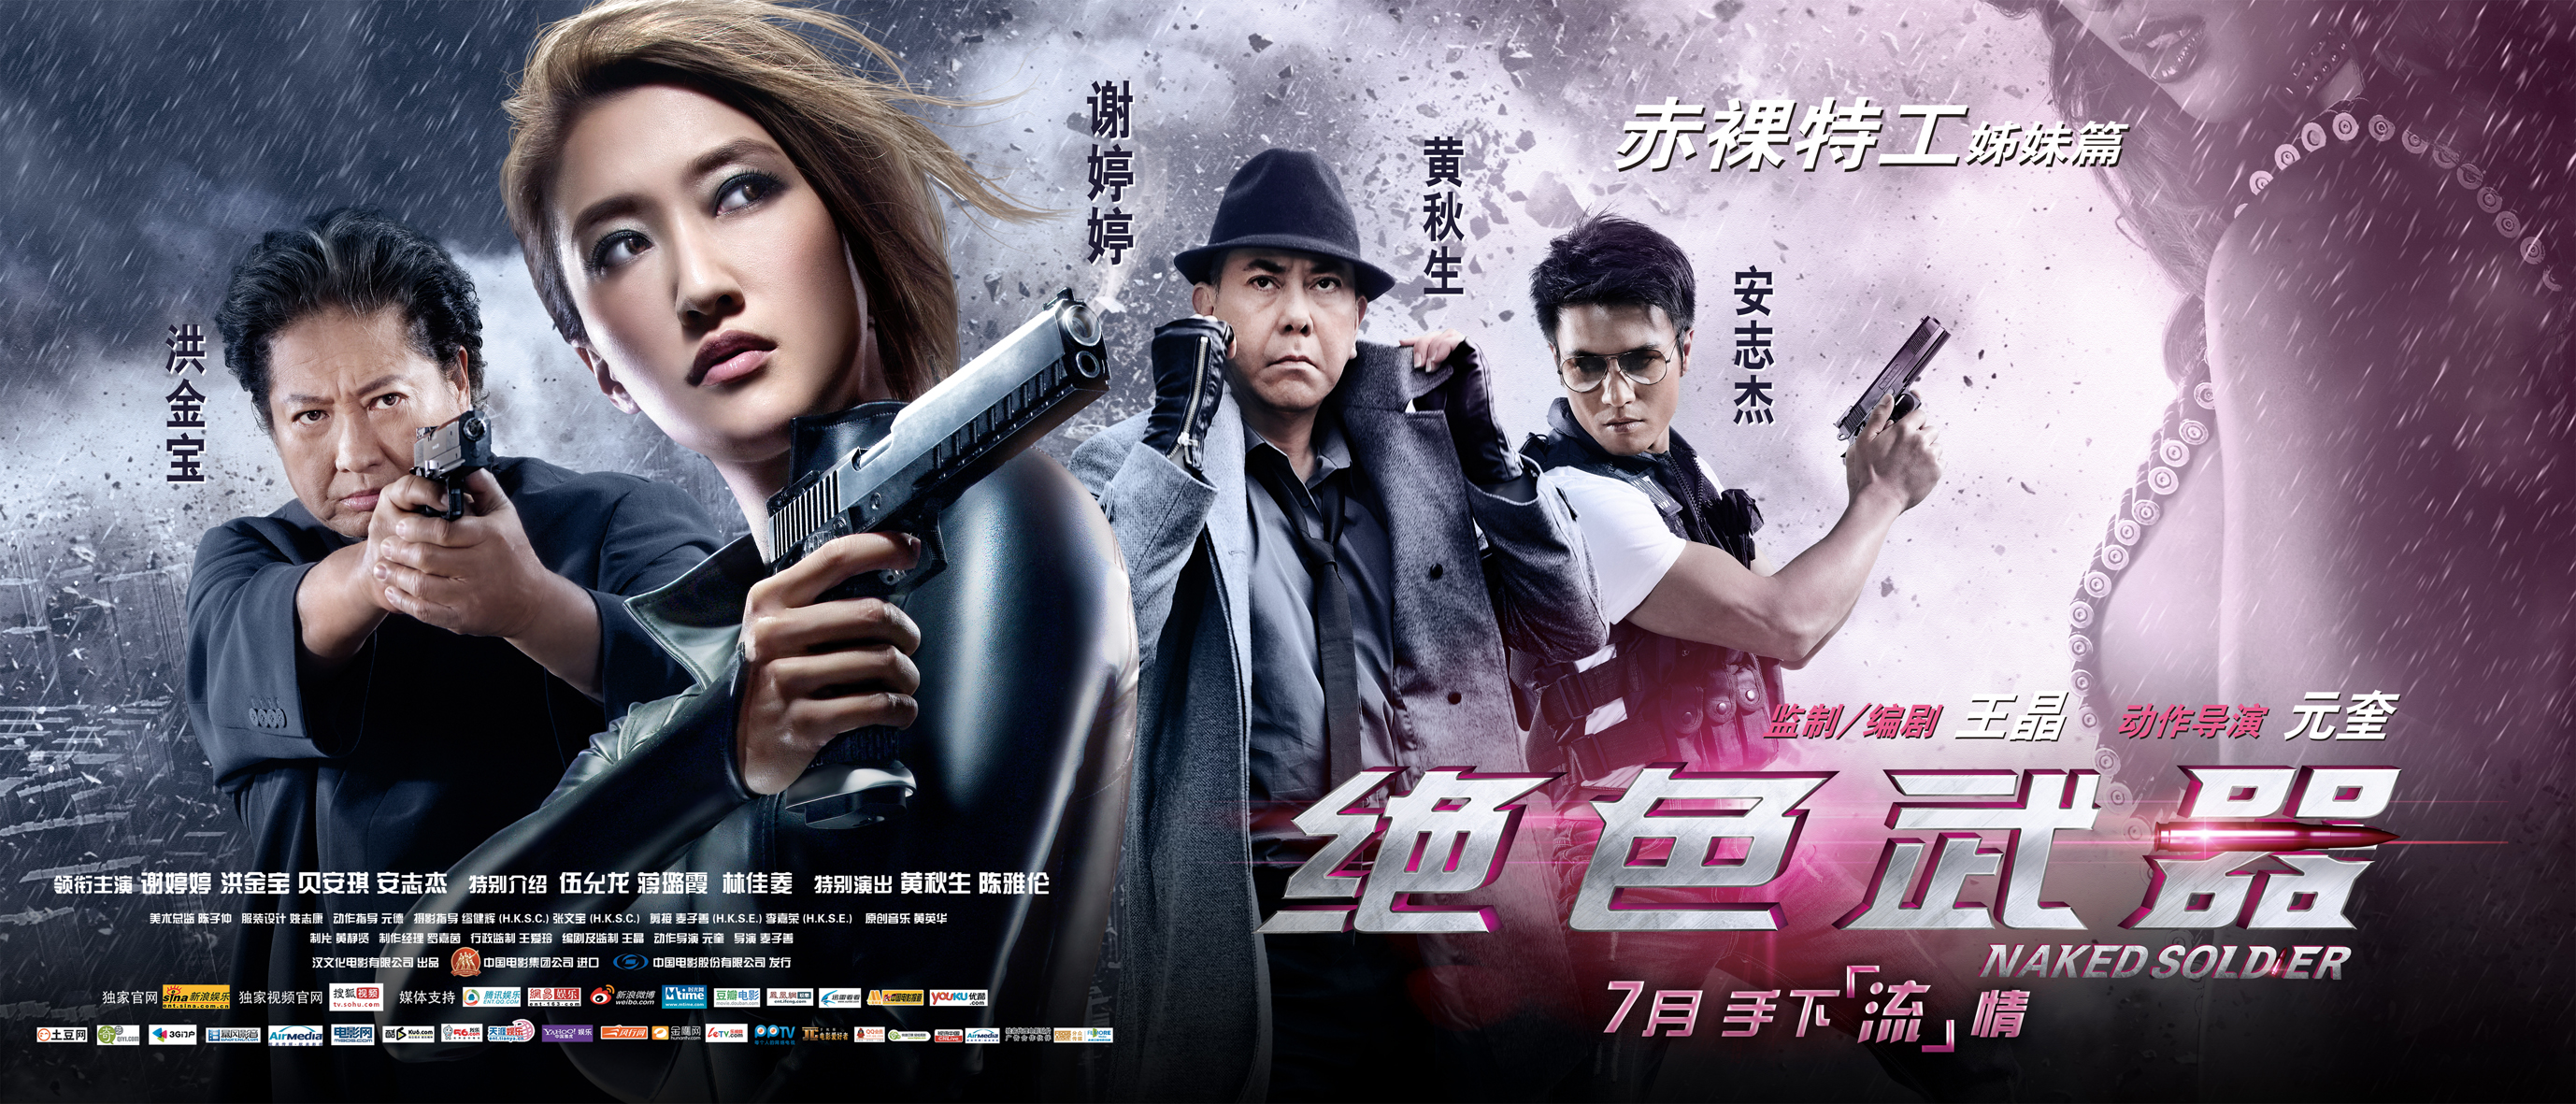 Watch Naked Soldier 2012 Full HD Movie Online for Free